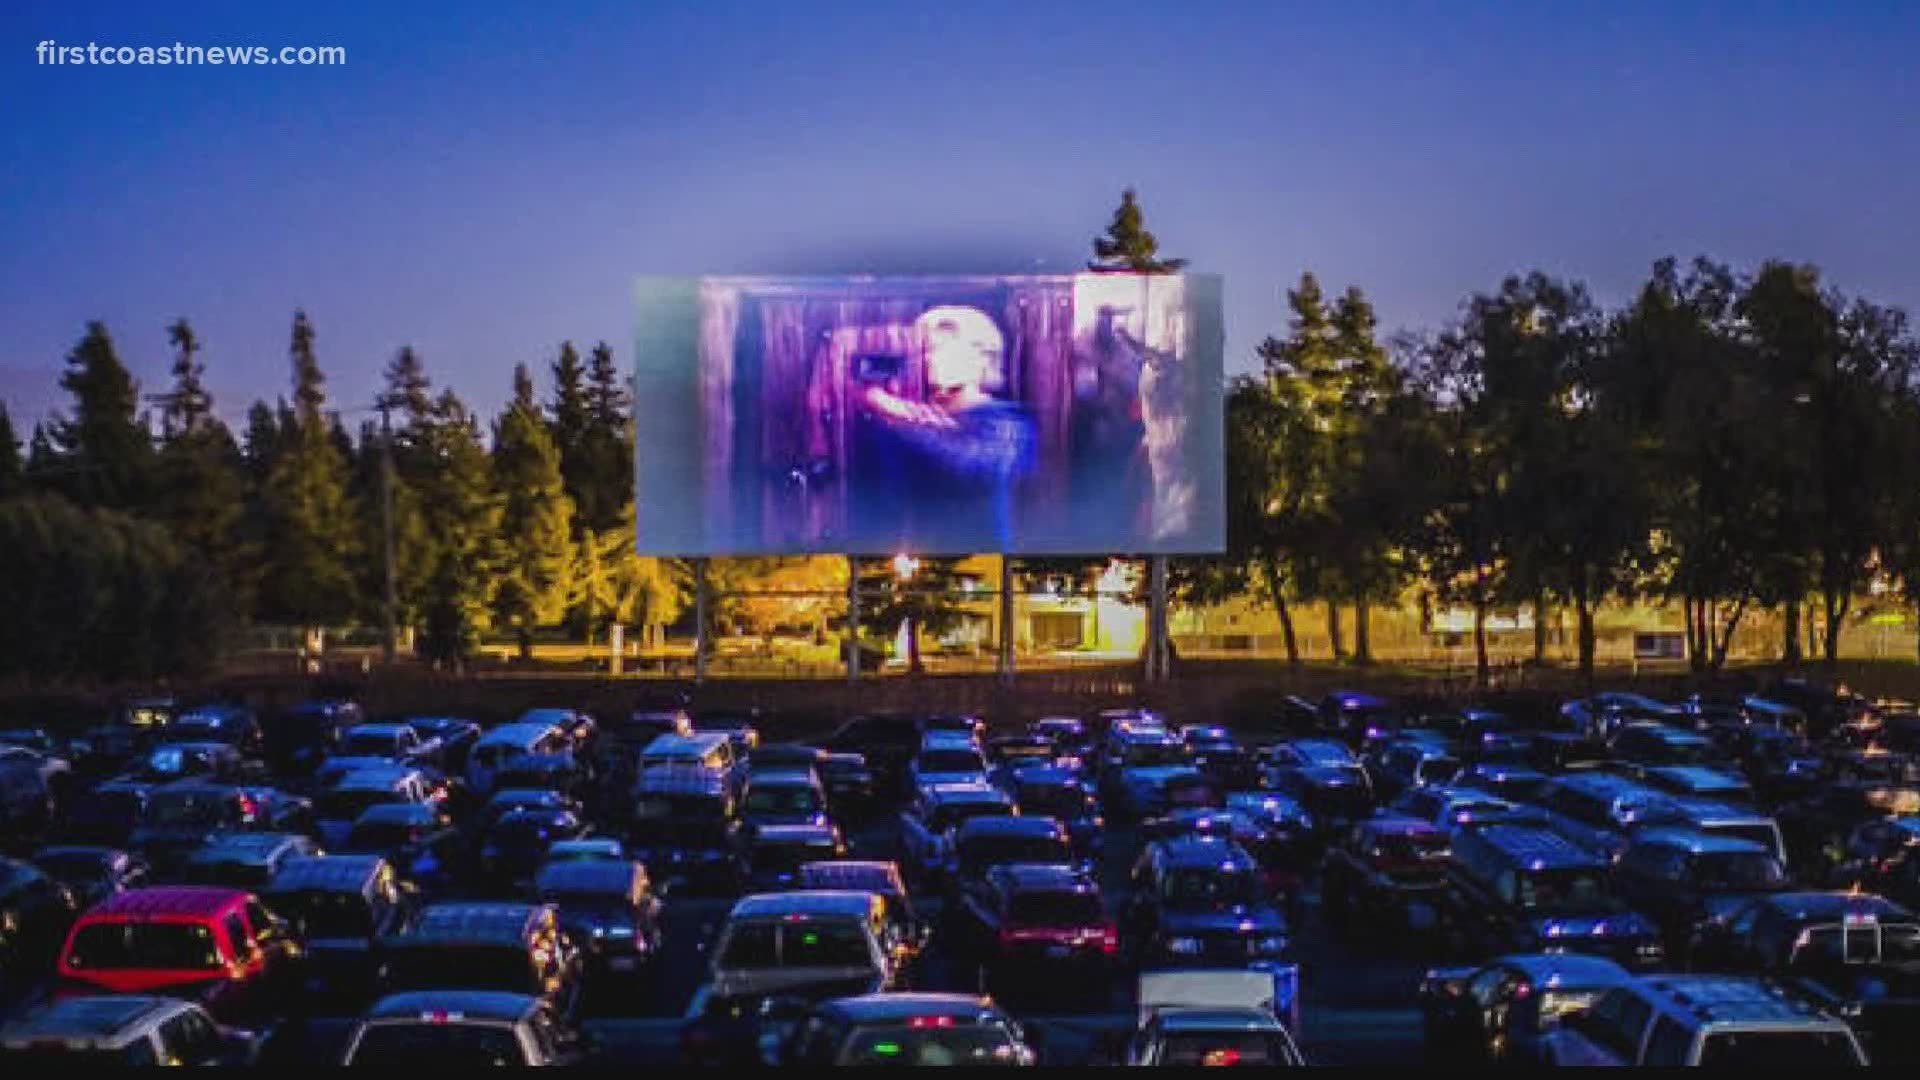 Buzz Walmart Is Transforming Parking Lots To Drive In Movie Theaters This Summer Firstcoastnews Com